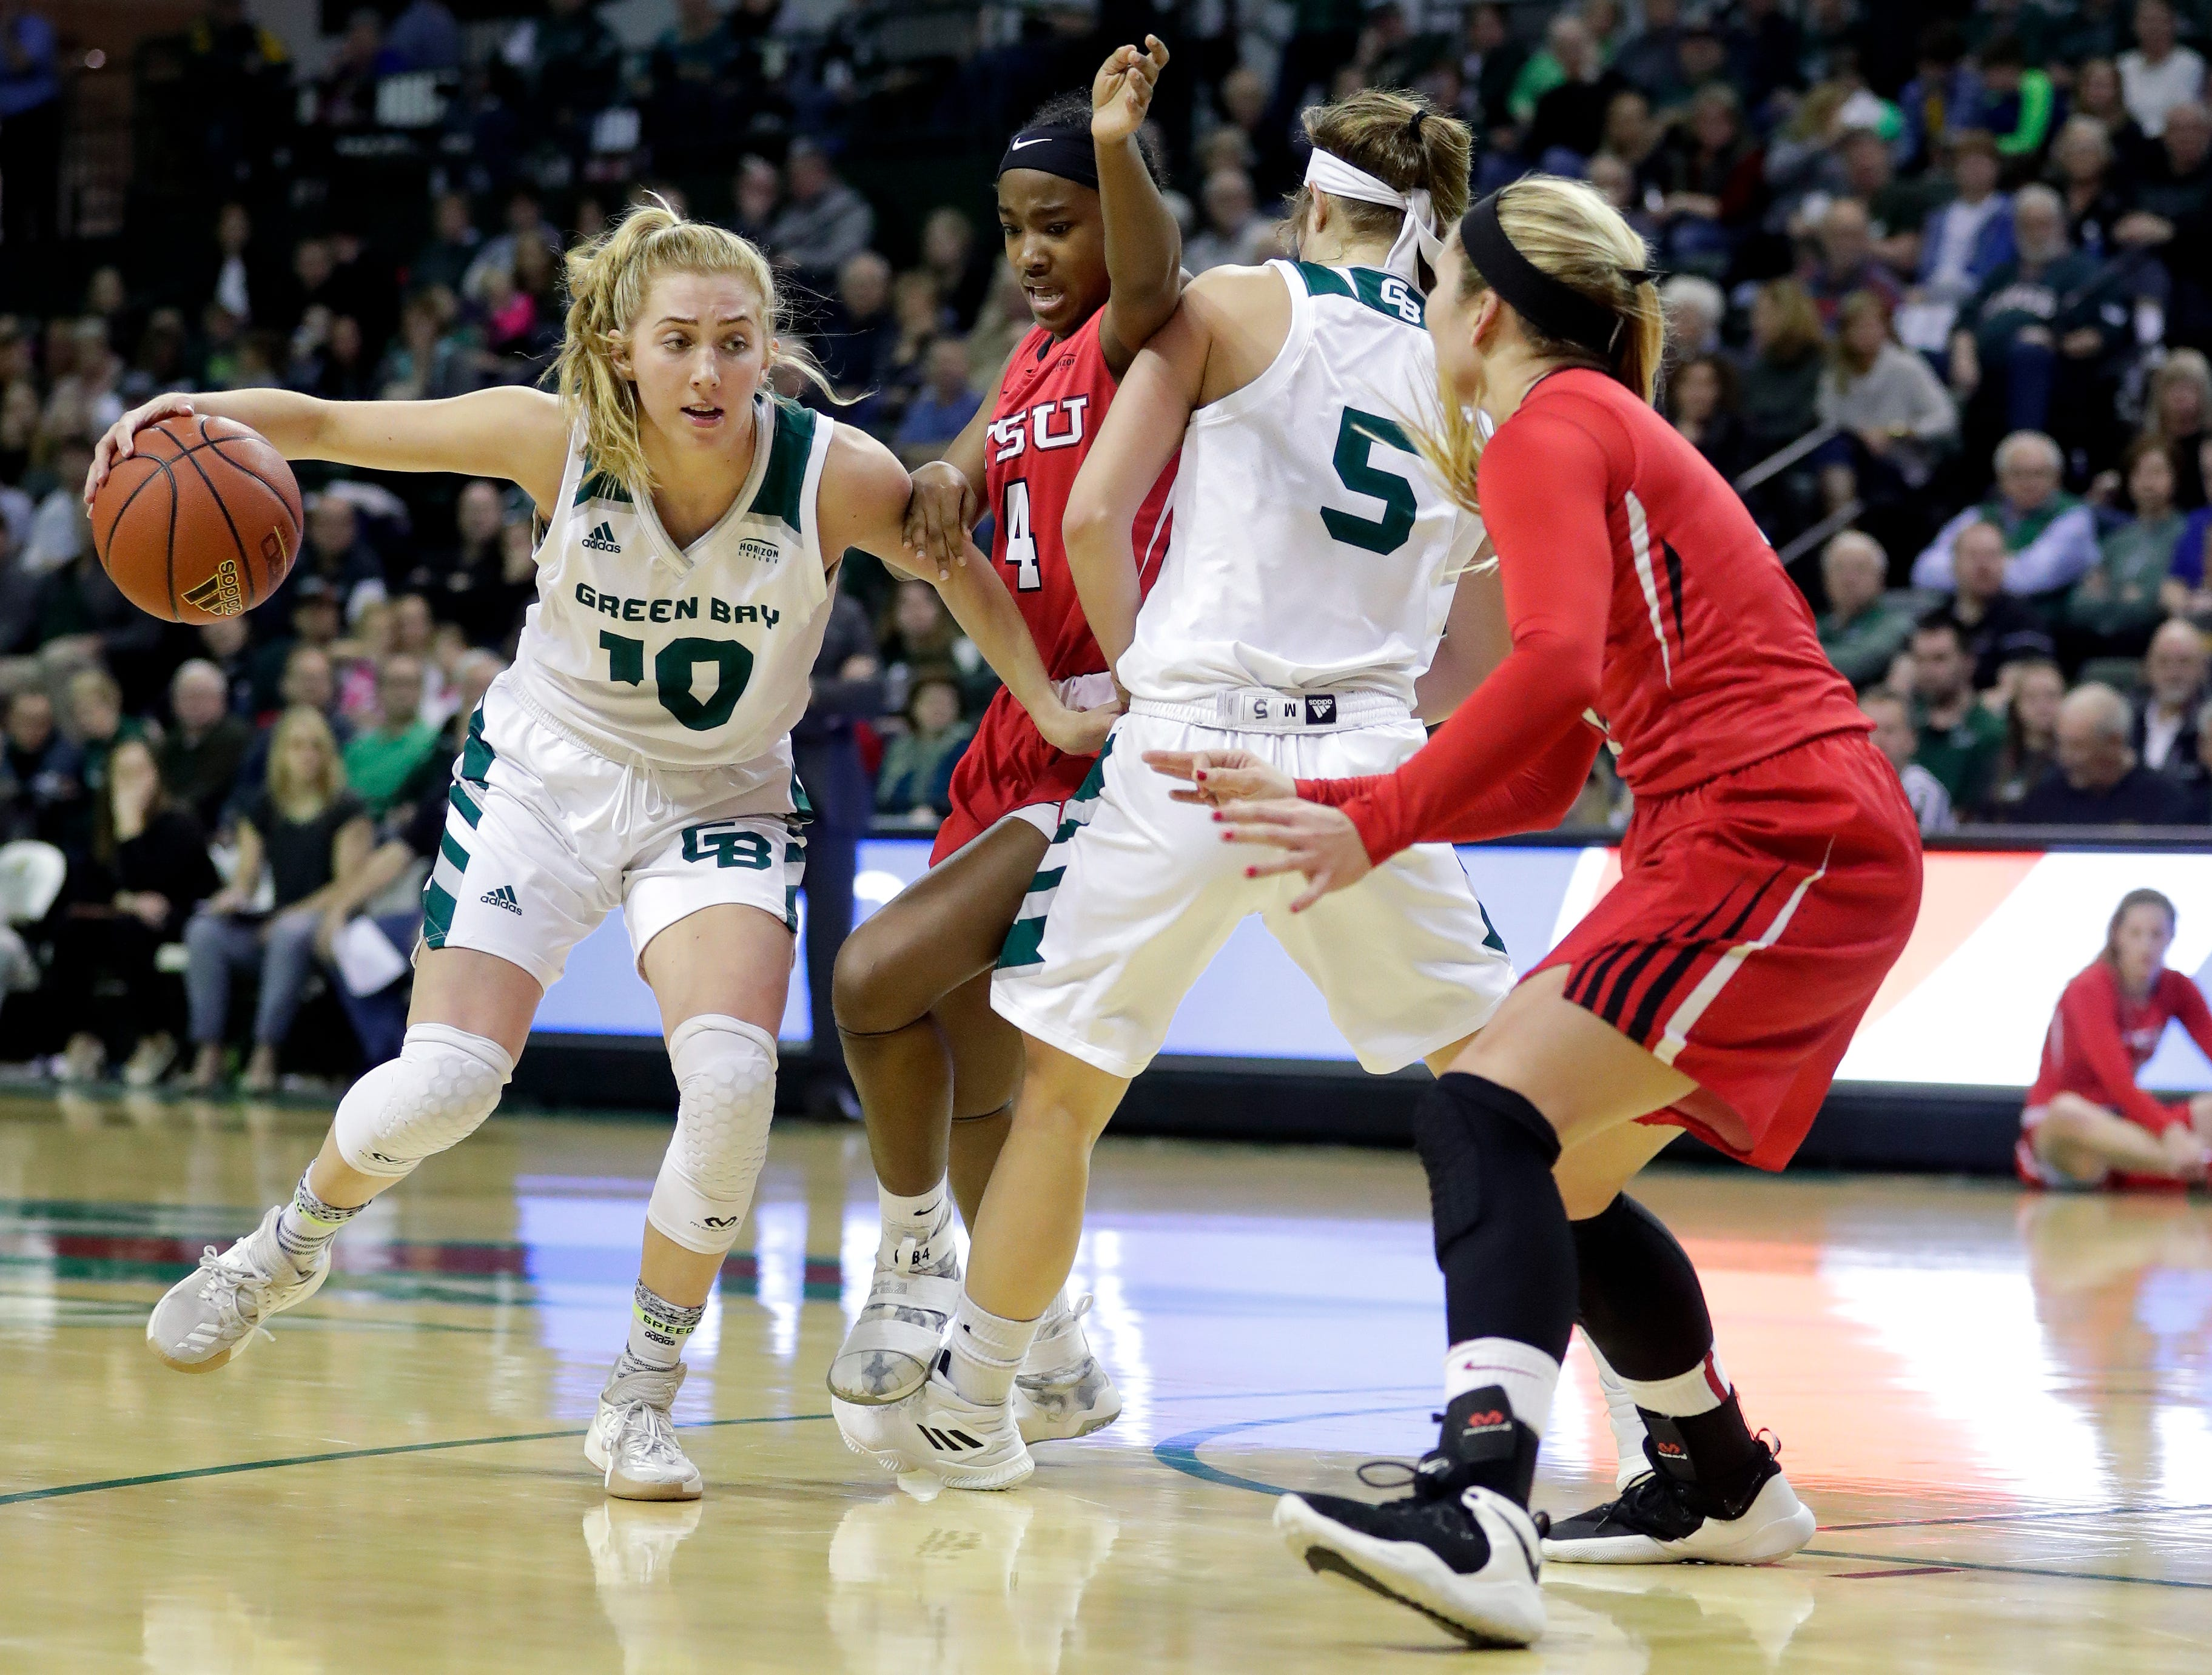 UWGB freshman guard Anna Brecht drives against the Youngstown State defense on Jan. 12, 2019 at the Kress Center. Sarah Kloepping/USA TODAY NETWORK-Wisconsin